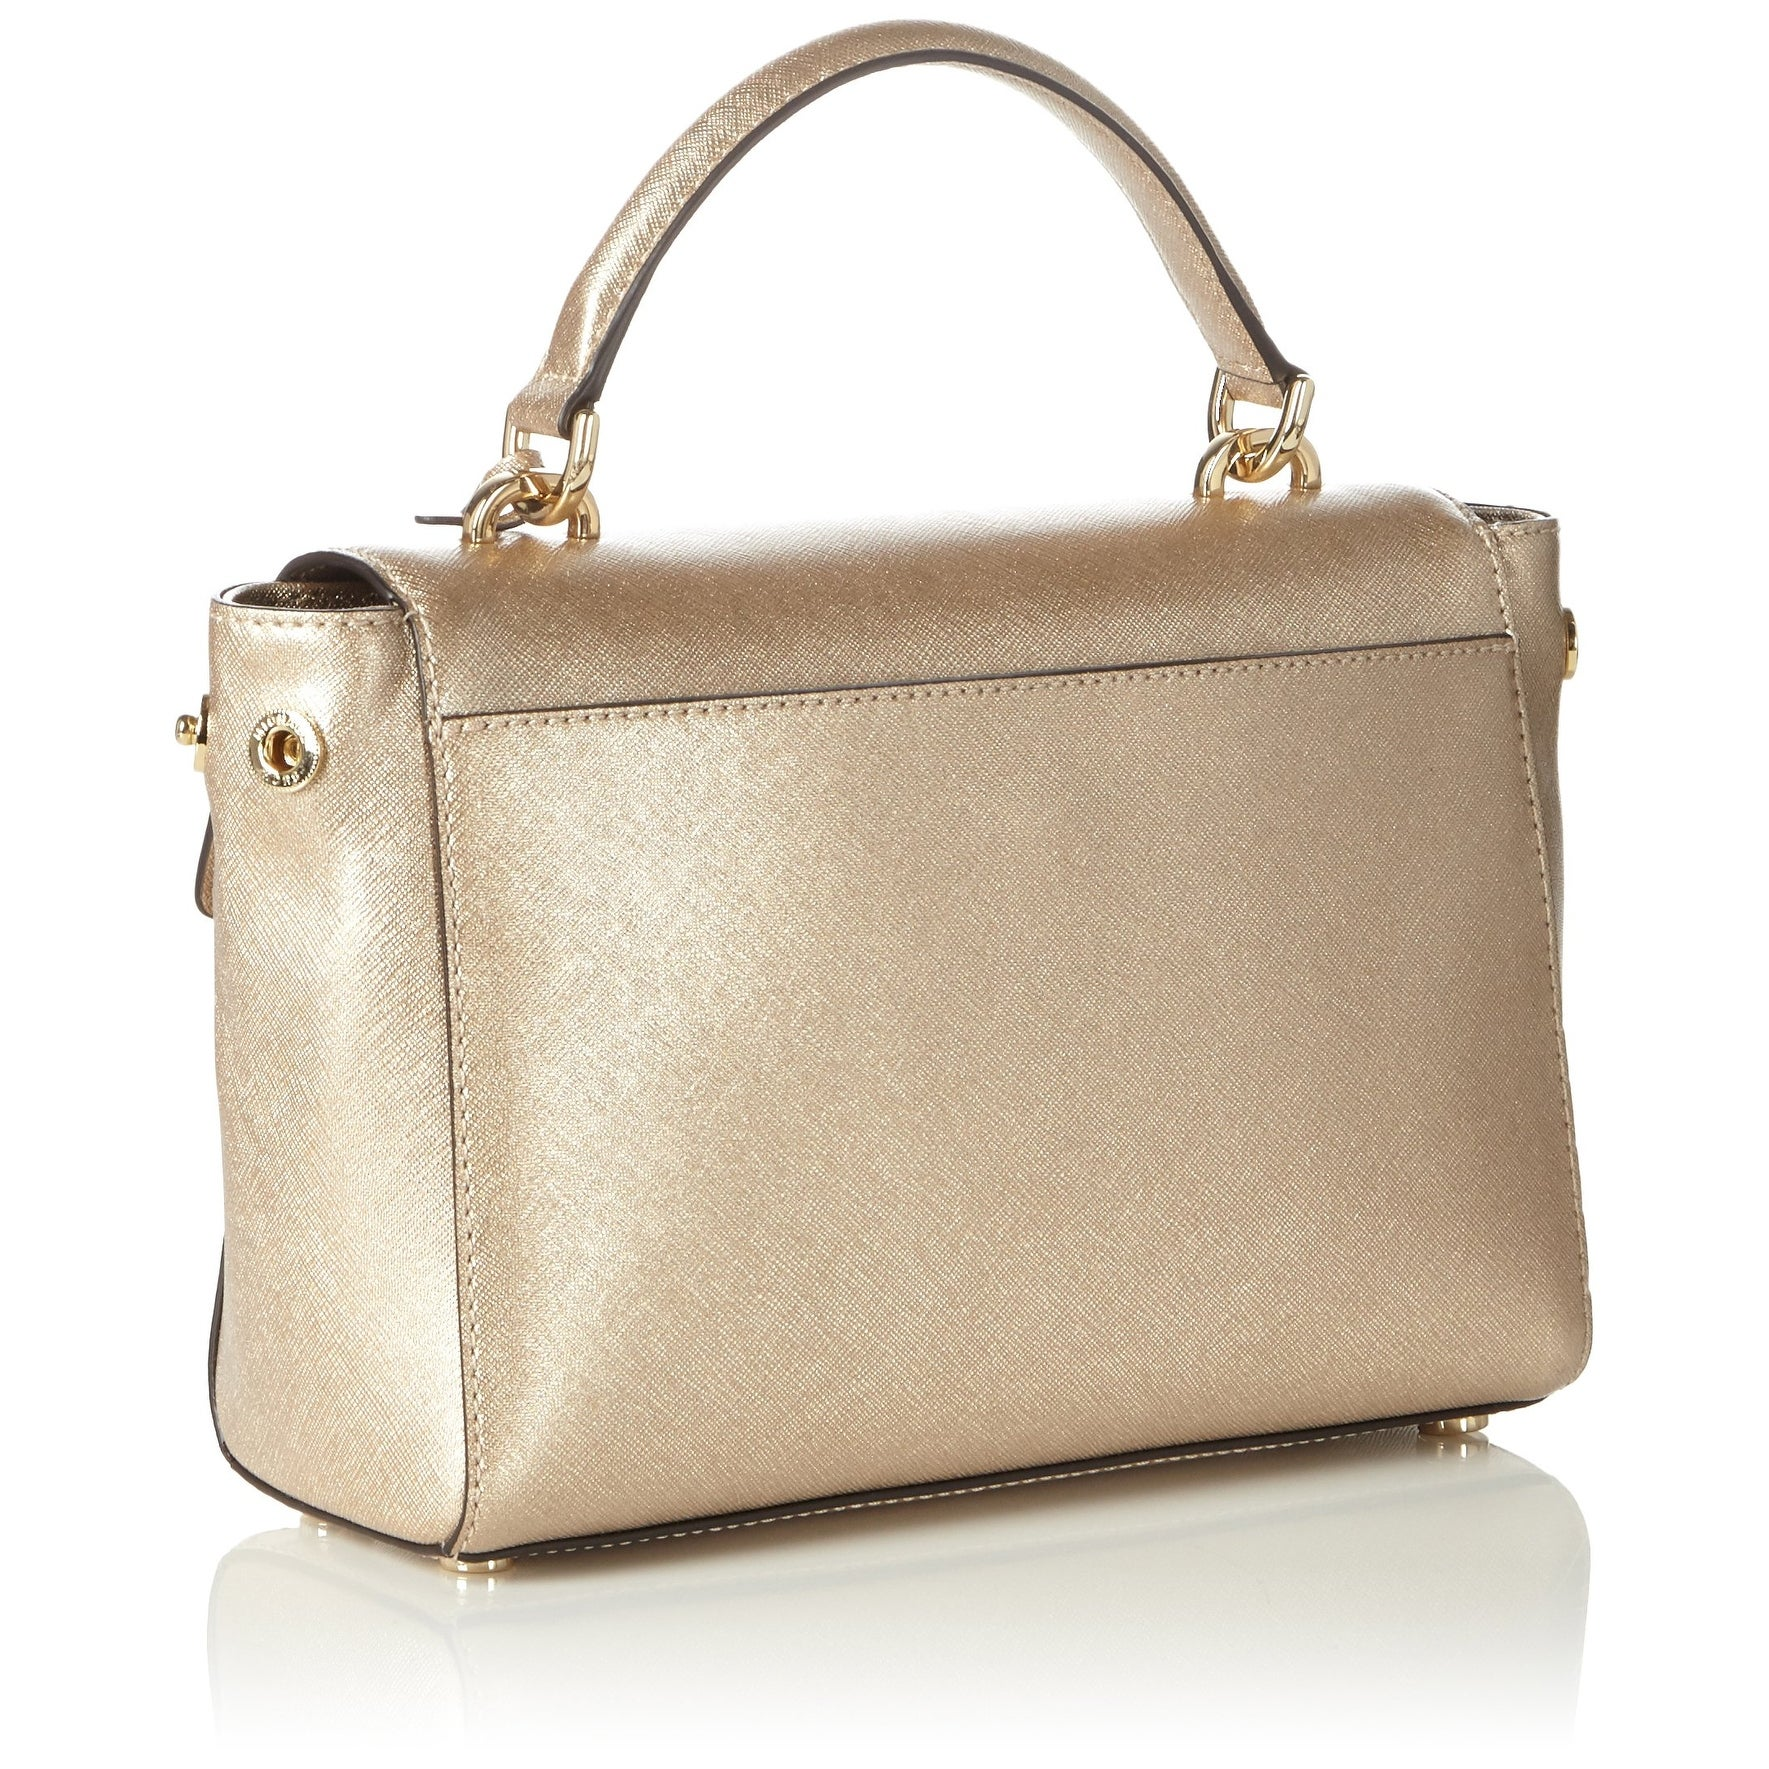 7311f251bb58b7 Shop Michael Kors NEW Pale Gold Leather Ava Small Satchel Purse Handbag - Free  Shipping Today - Overstock - 19573000